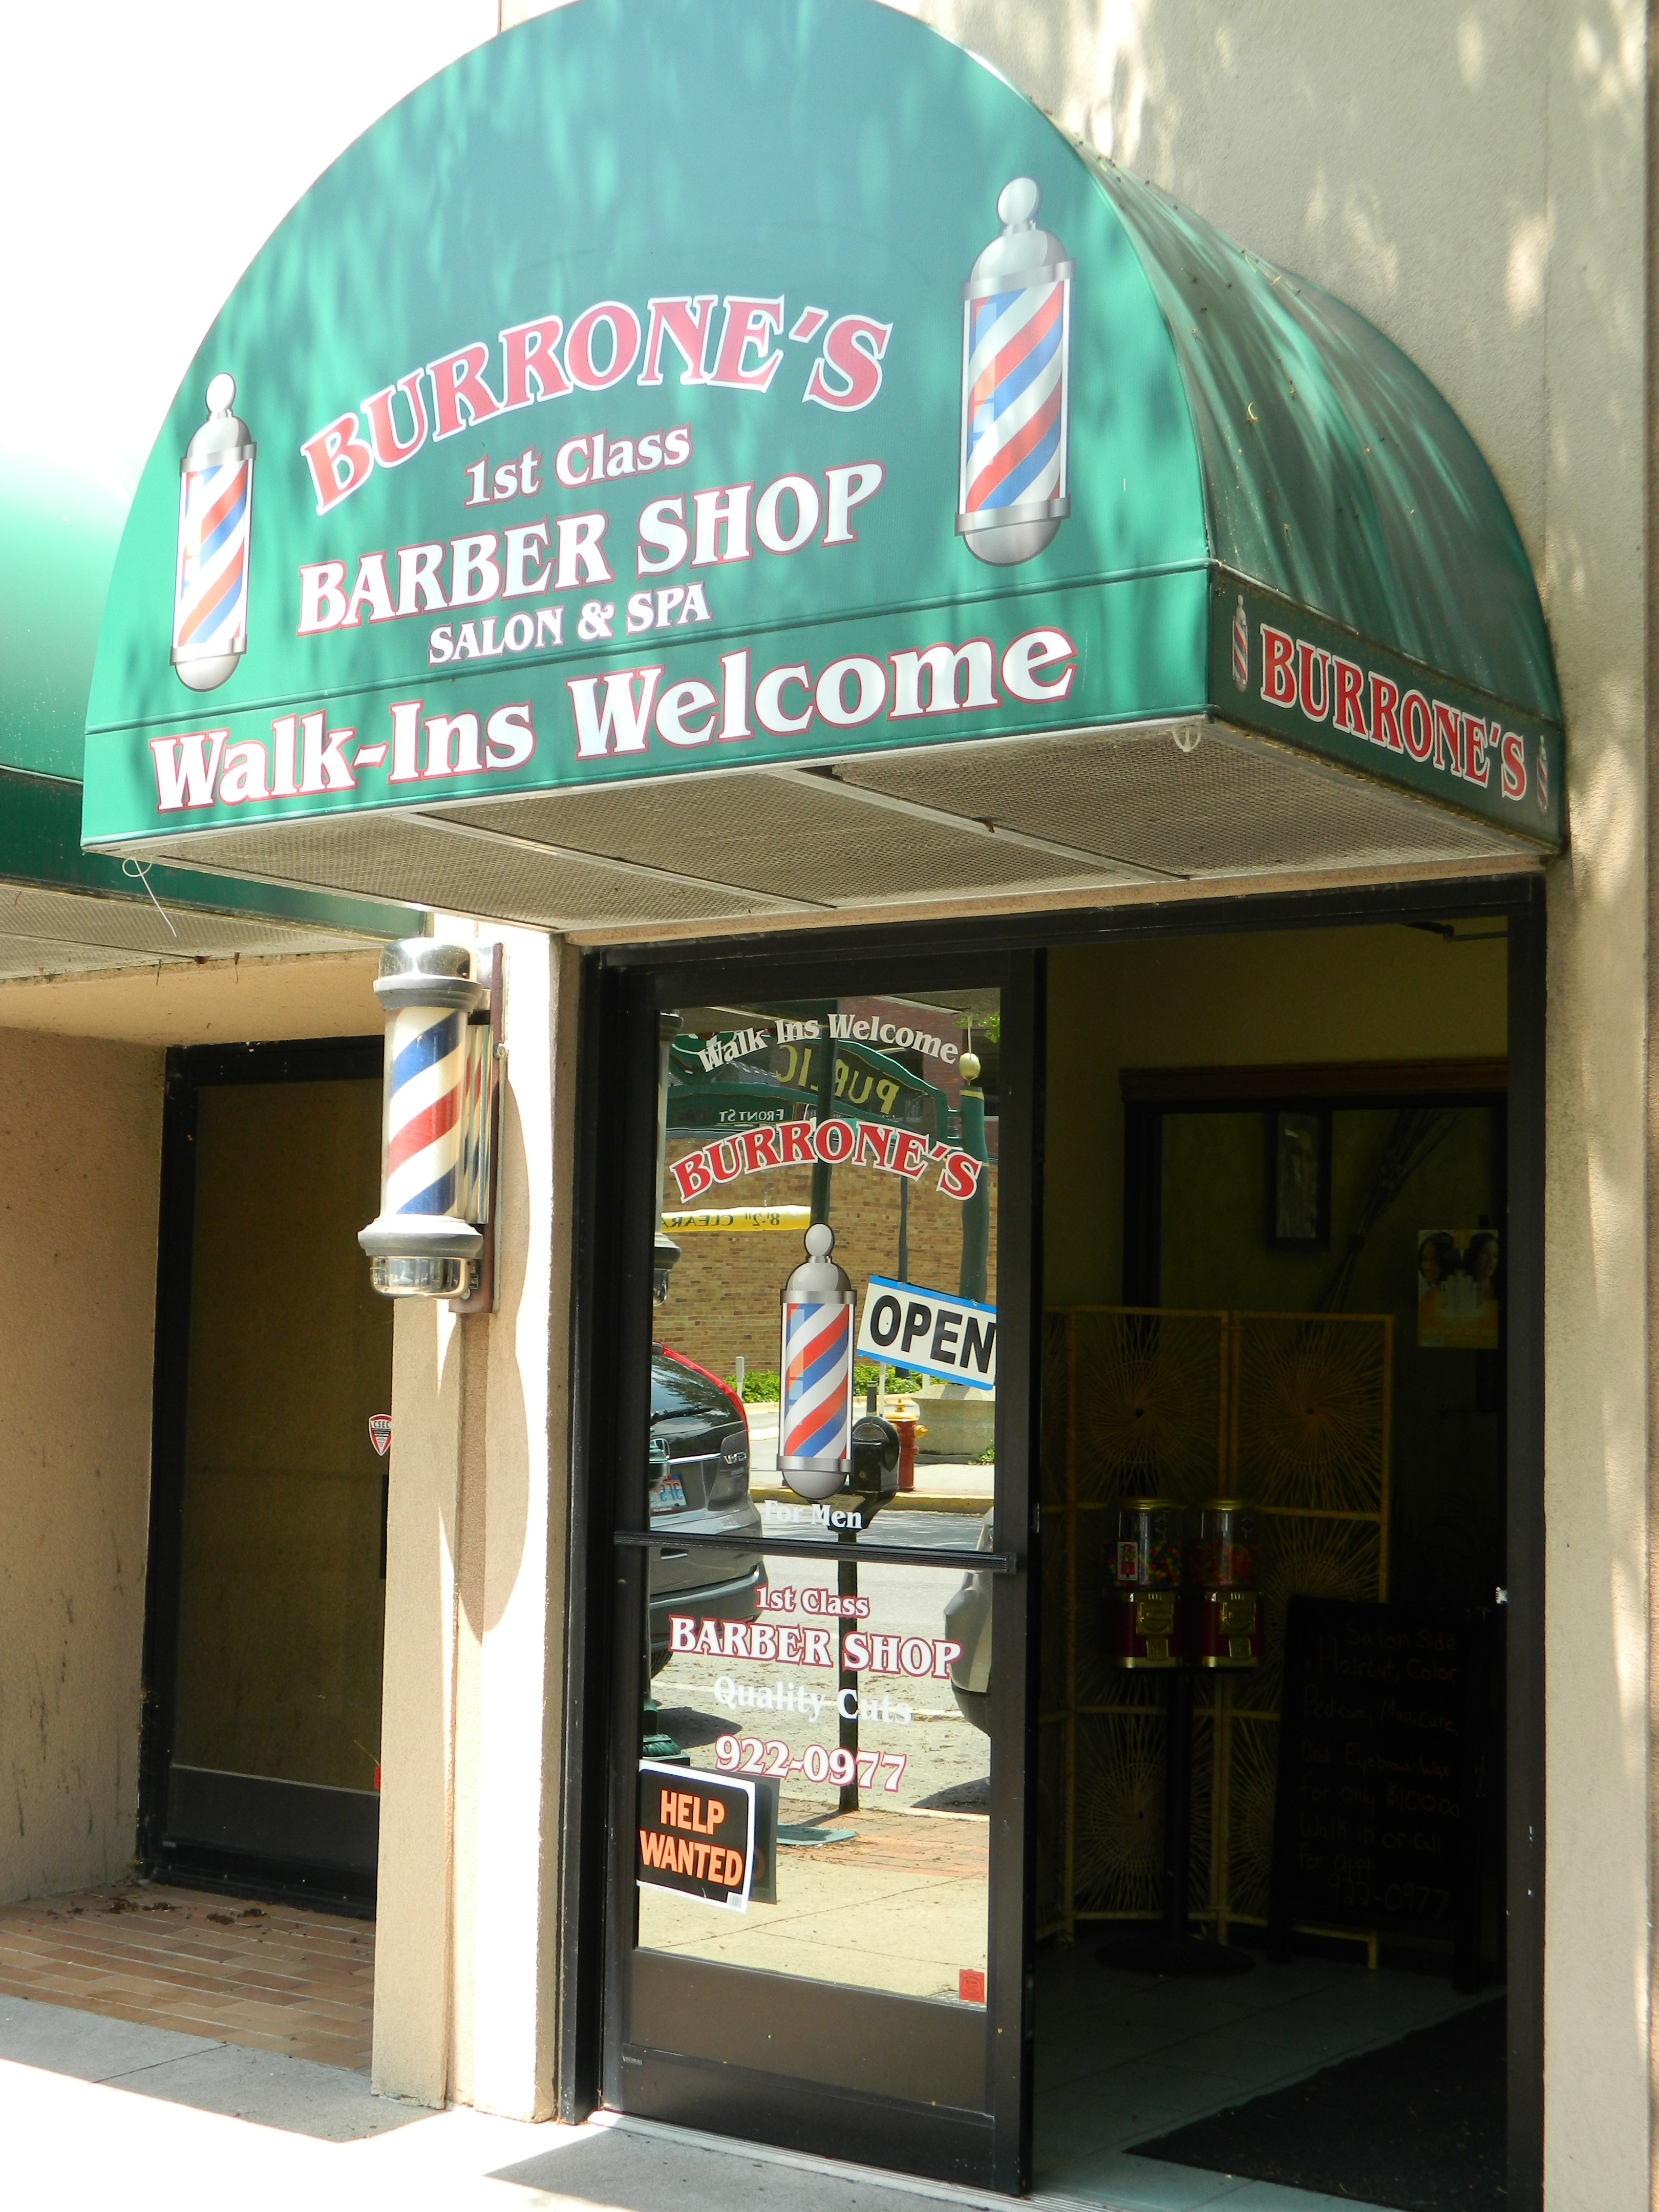 Burrone's Barber Shop Salon & Spa